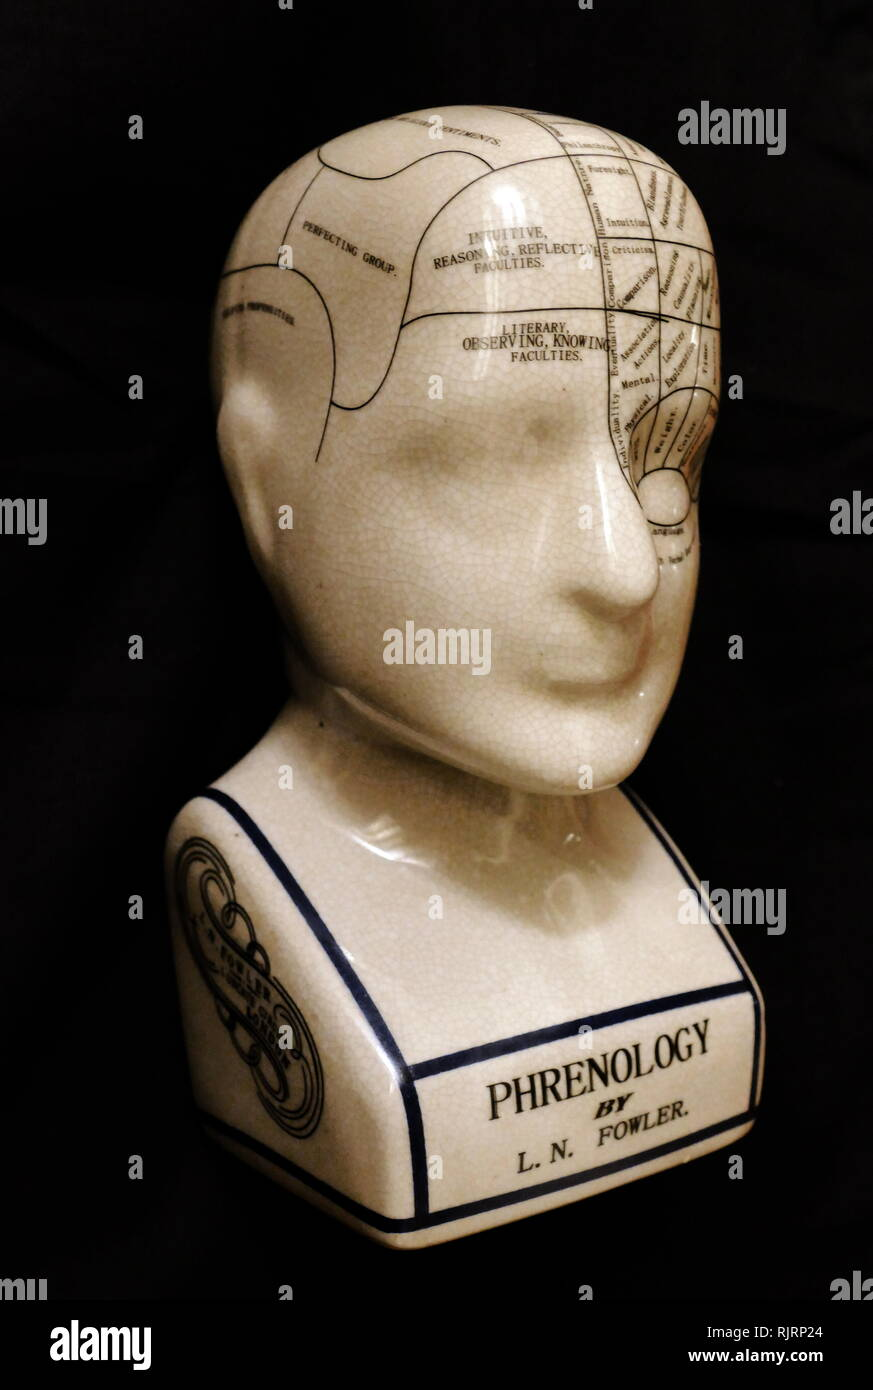 Phrenological head showing chart of areas of the brain. Phrenology is a pseudo medicine, primarily focused on measurements of the human skull, based on the concept that the brain is the organ of the mind, and that certain brain areas have localized, specific functions or modules. Developed by German physician Franz Joseph Gall in 1796, the discipline was very popular in the 19th century - Stock Image